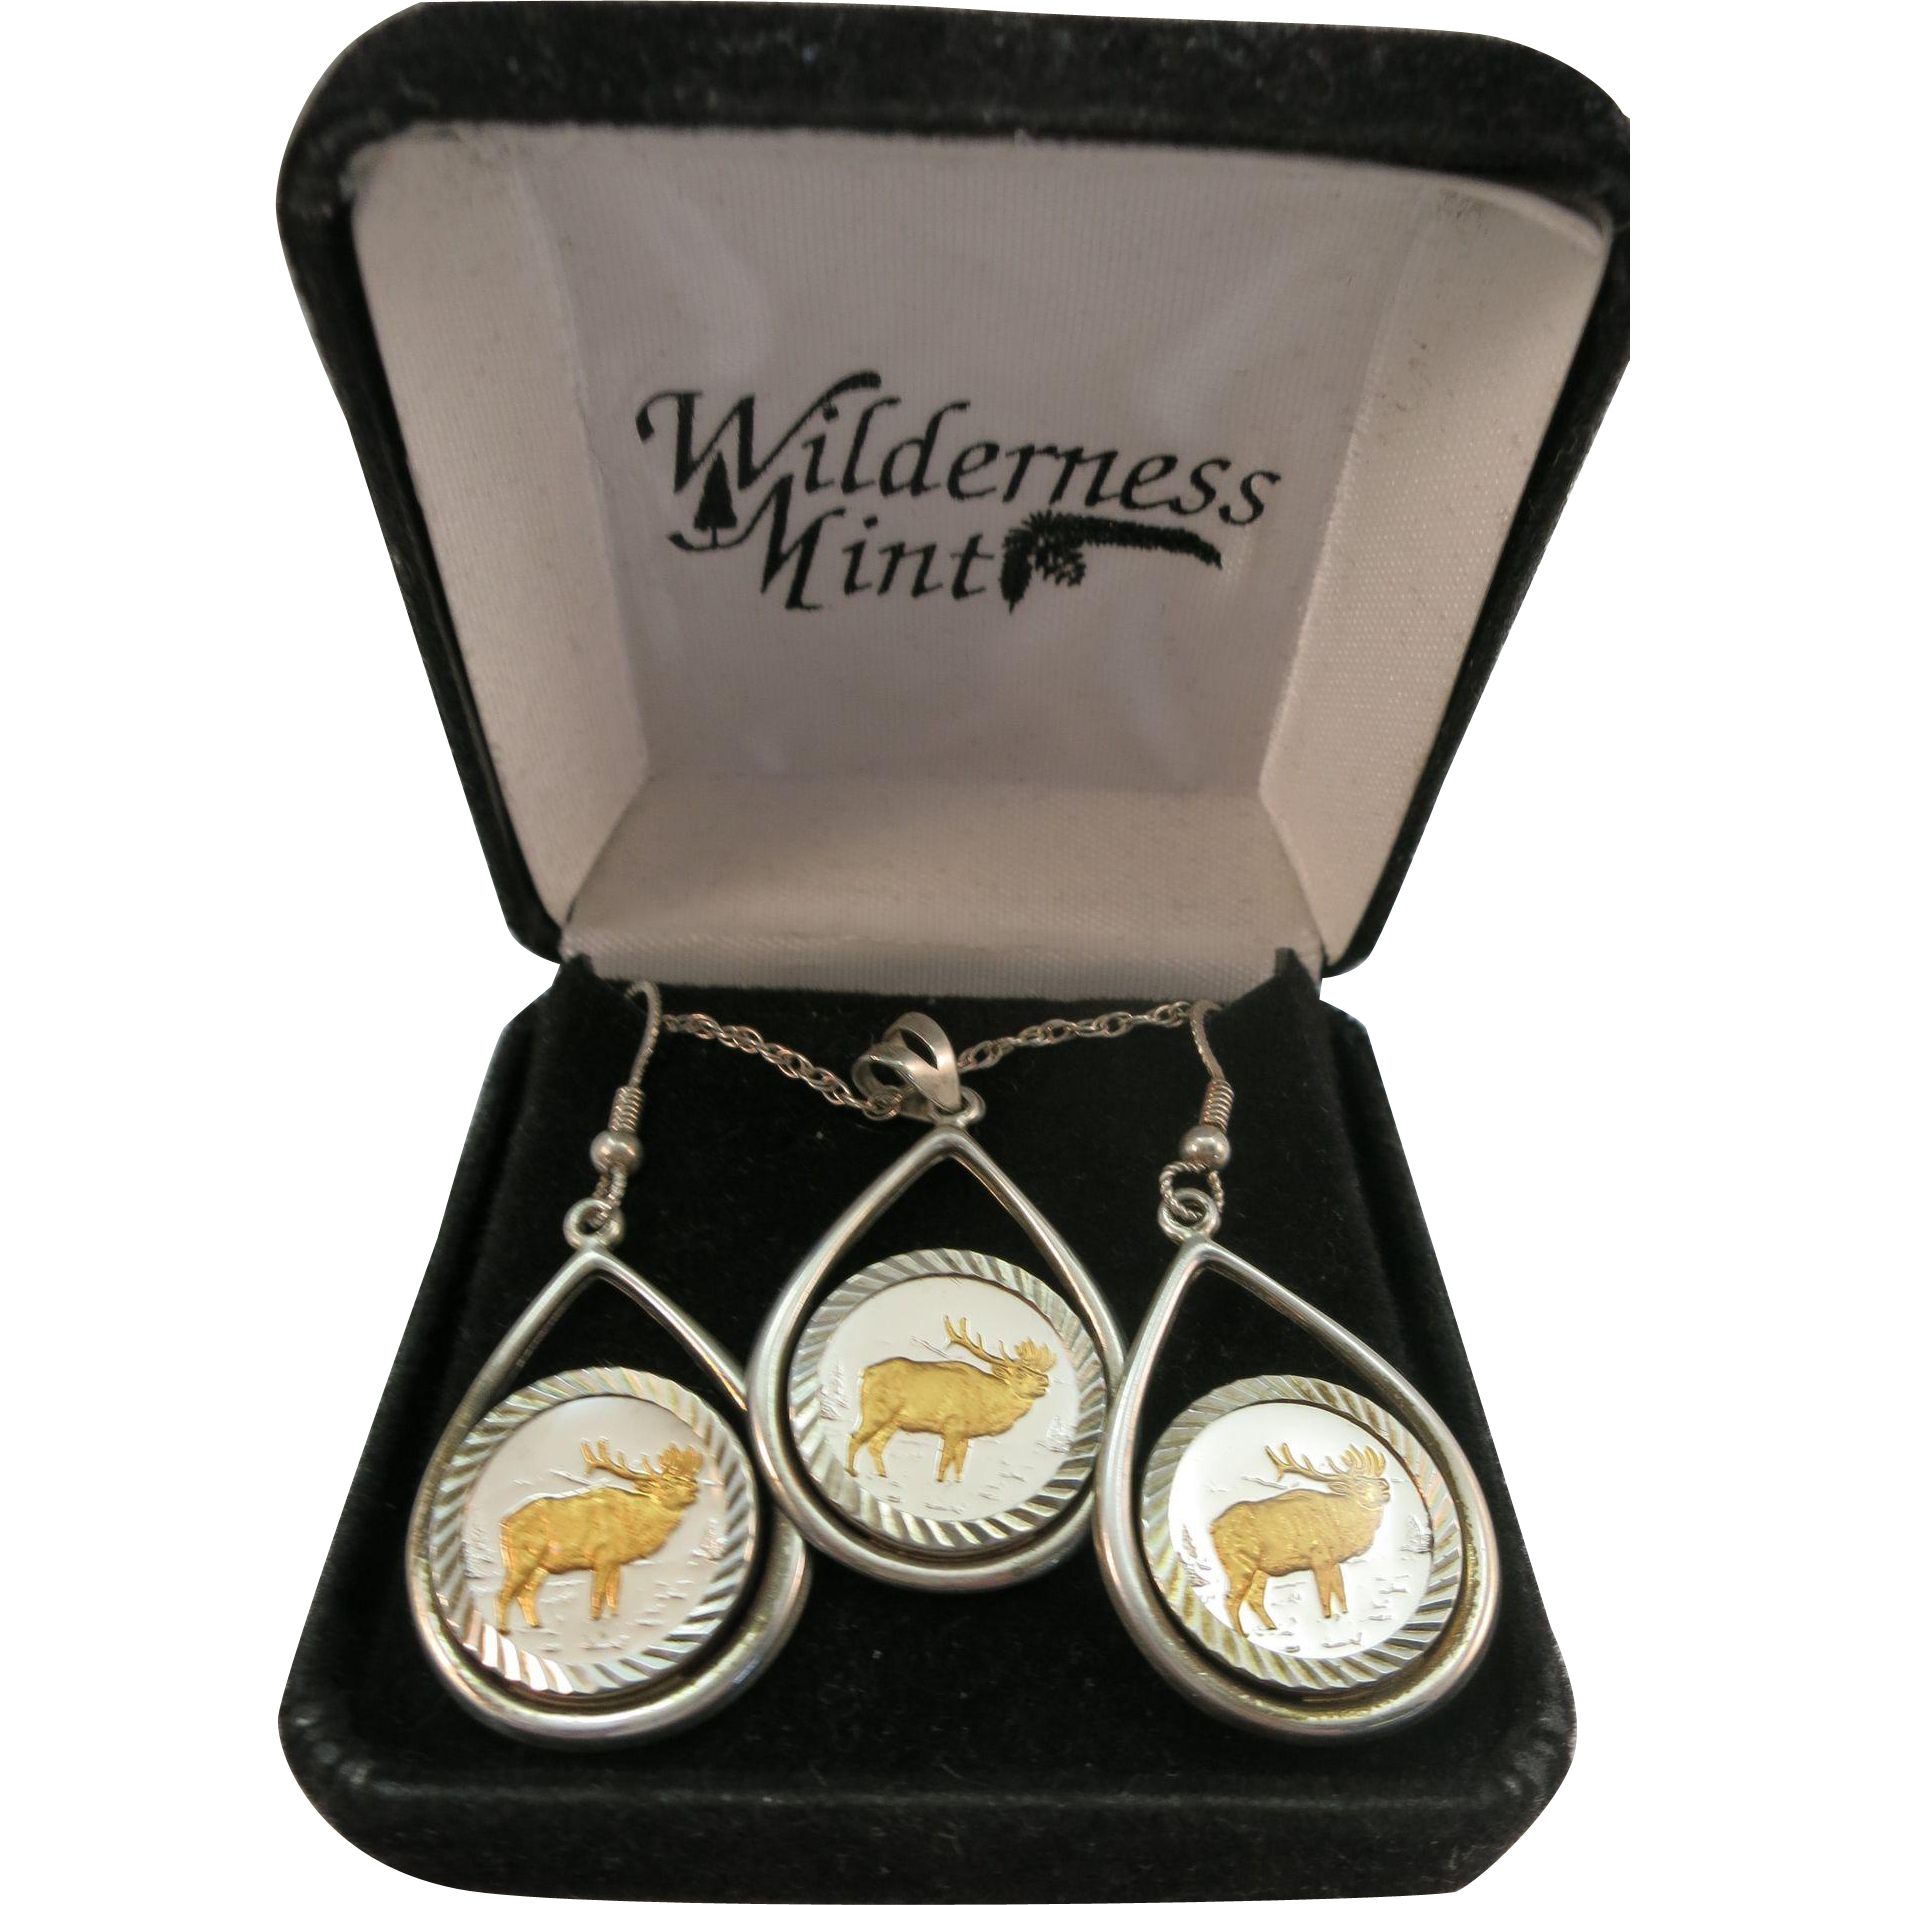 VINTAGE Famous Wilderness Mint 3 Piece Set Elk Theme Sterling with 24 Gold Accent